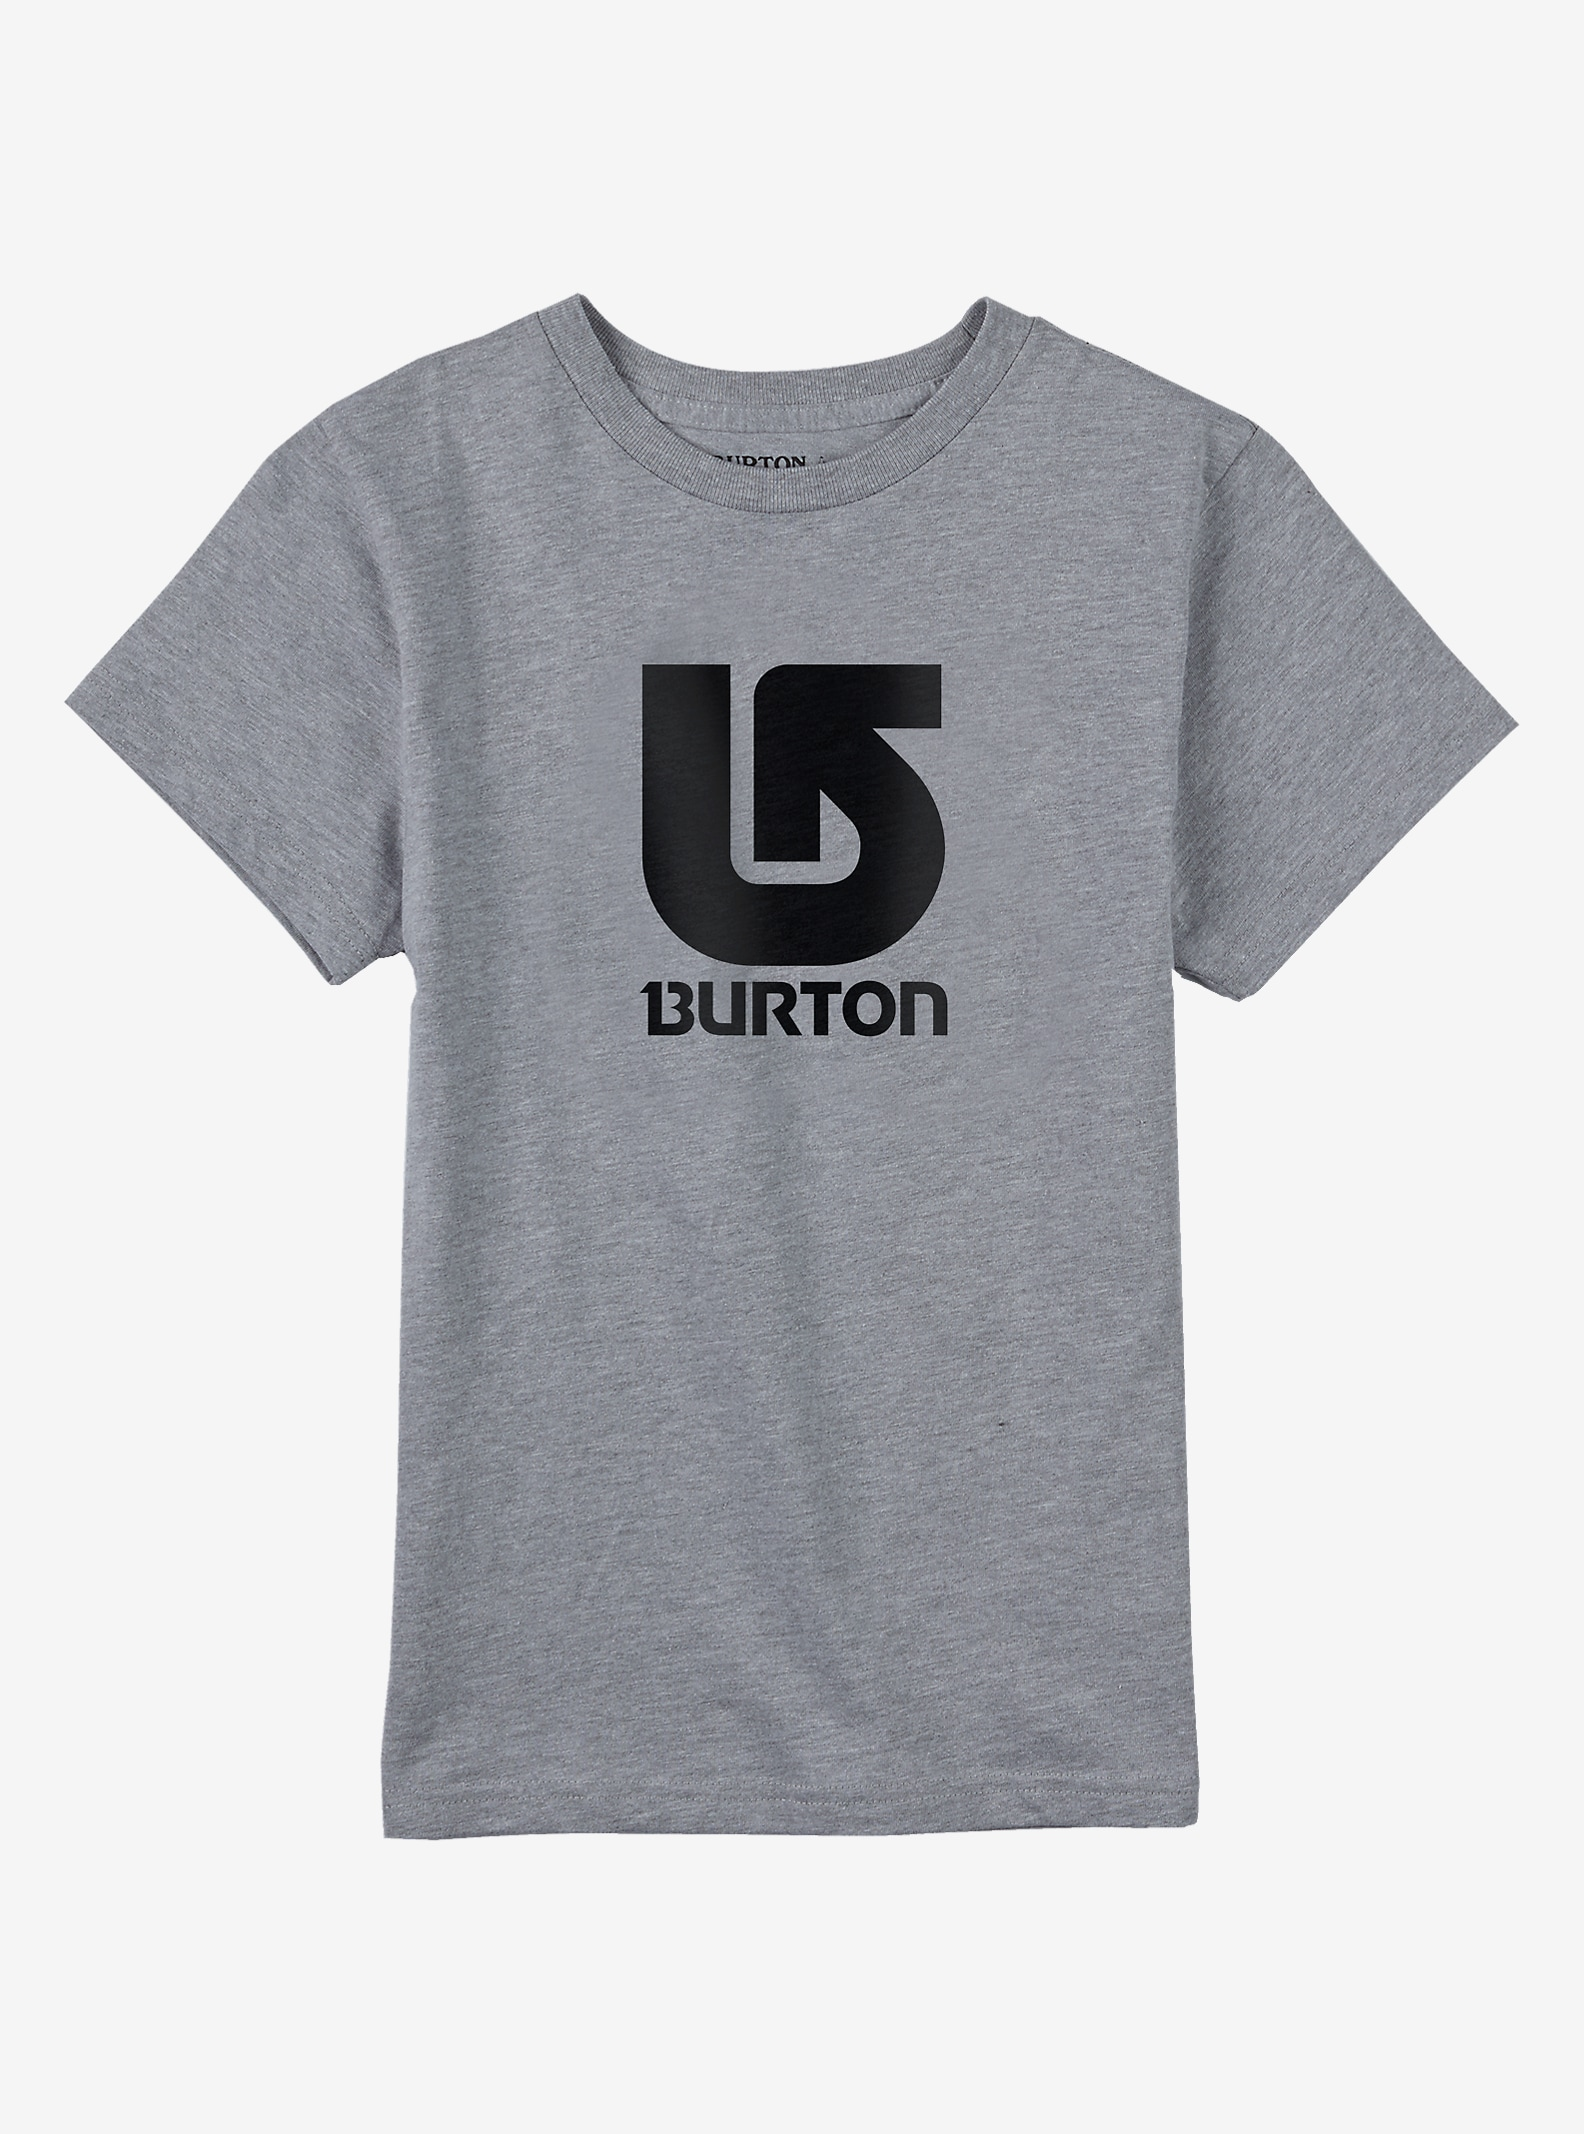 Burton Logo Vertical Short Sleeve T Shirt shown in Gray Heather